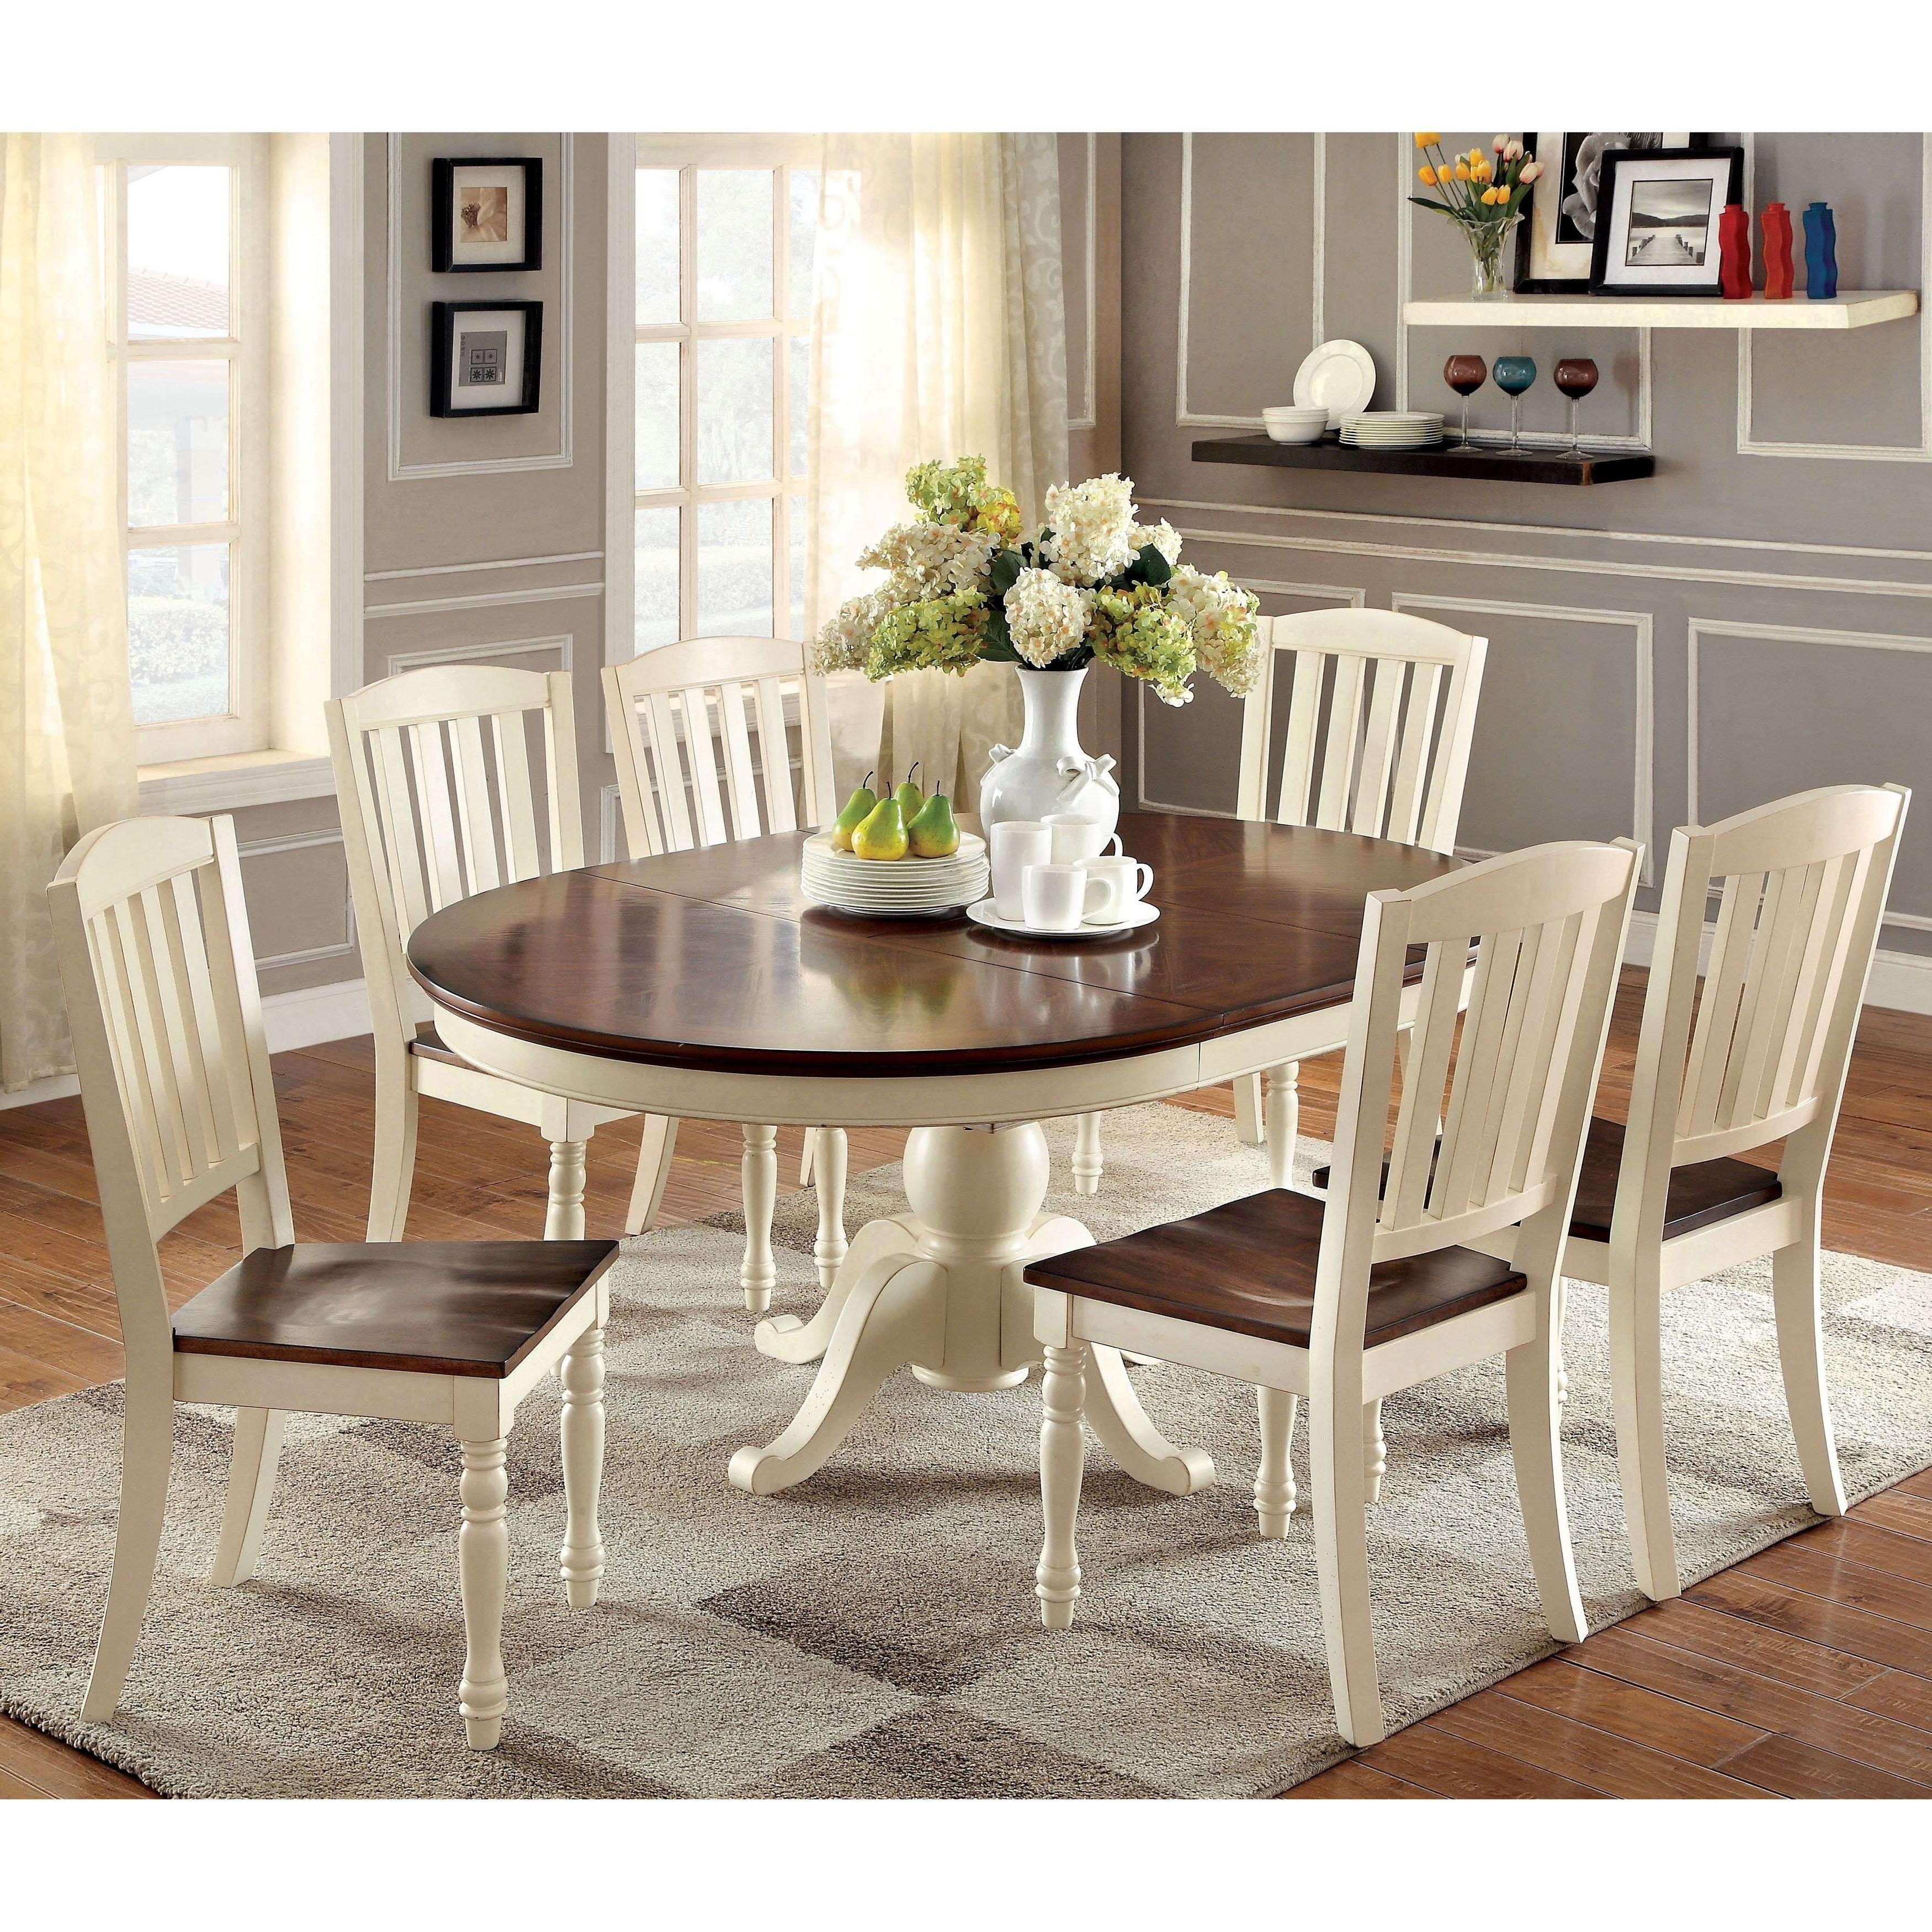 Fashionable Large Round Extending Dining Table Fresh Small Round Dining Tables In Small Round Extending Dining Tables (View 13 of 25)